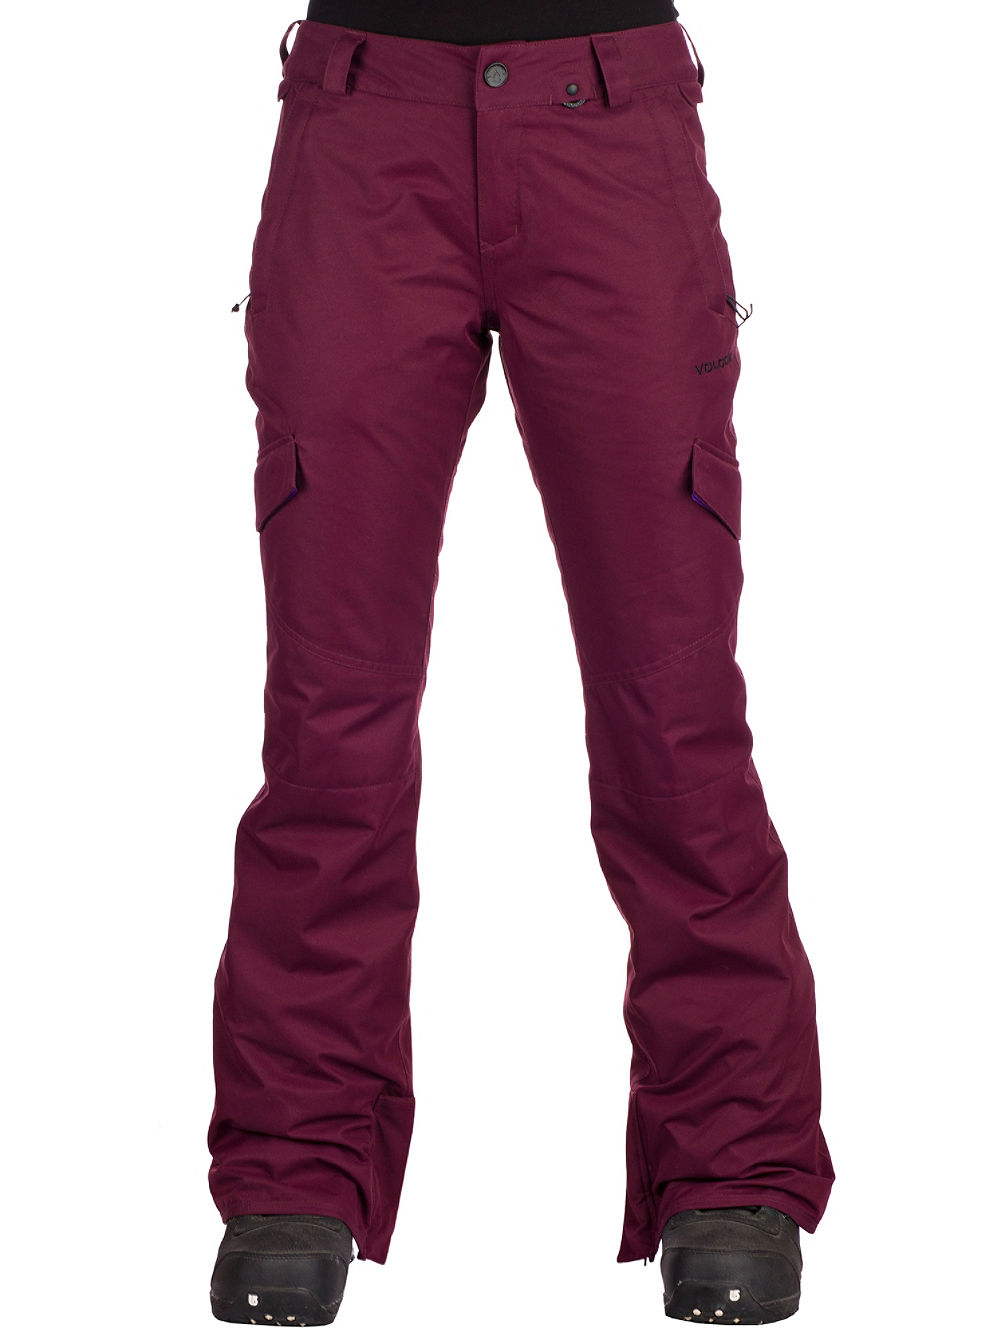 Bridger Insulated Pants